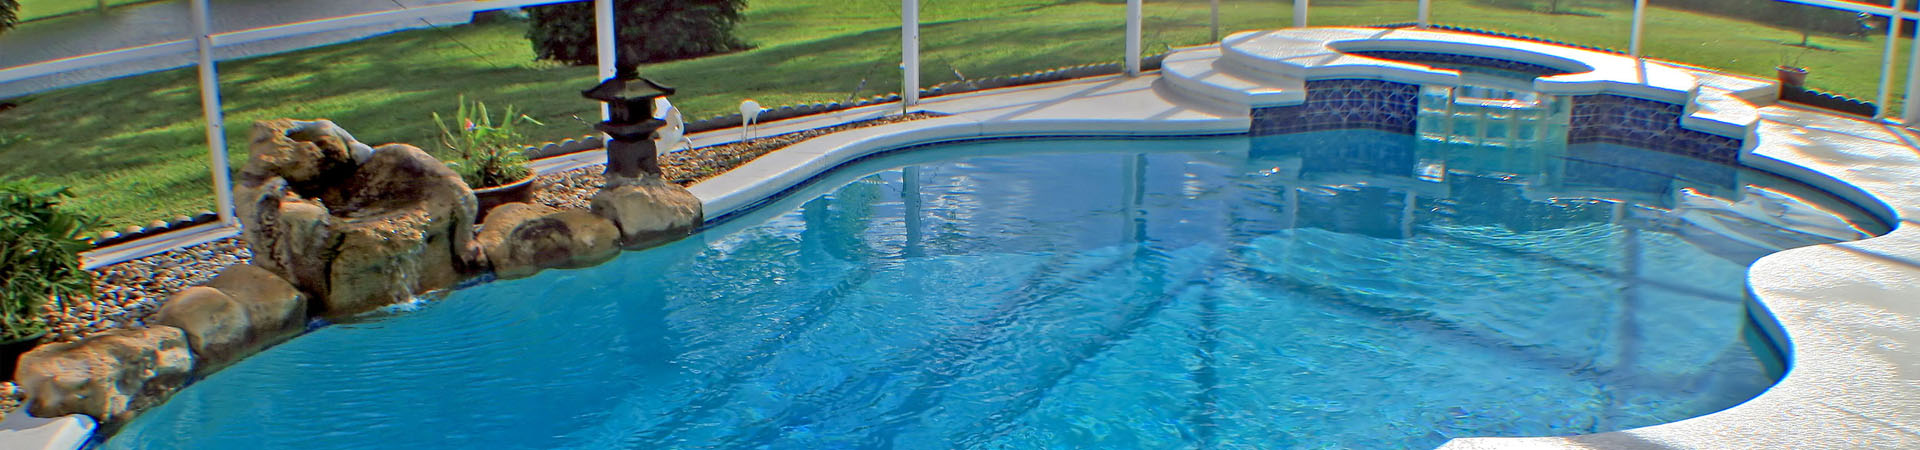 Stahlman Pool Company Pool Maintenance Service In Naples Fl Pool Company